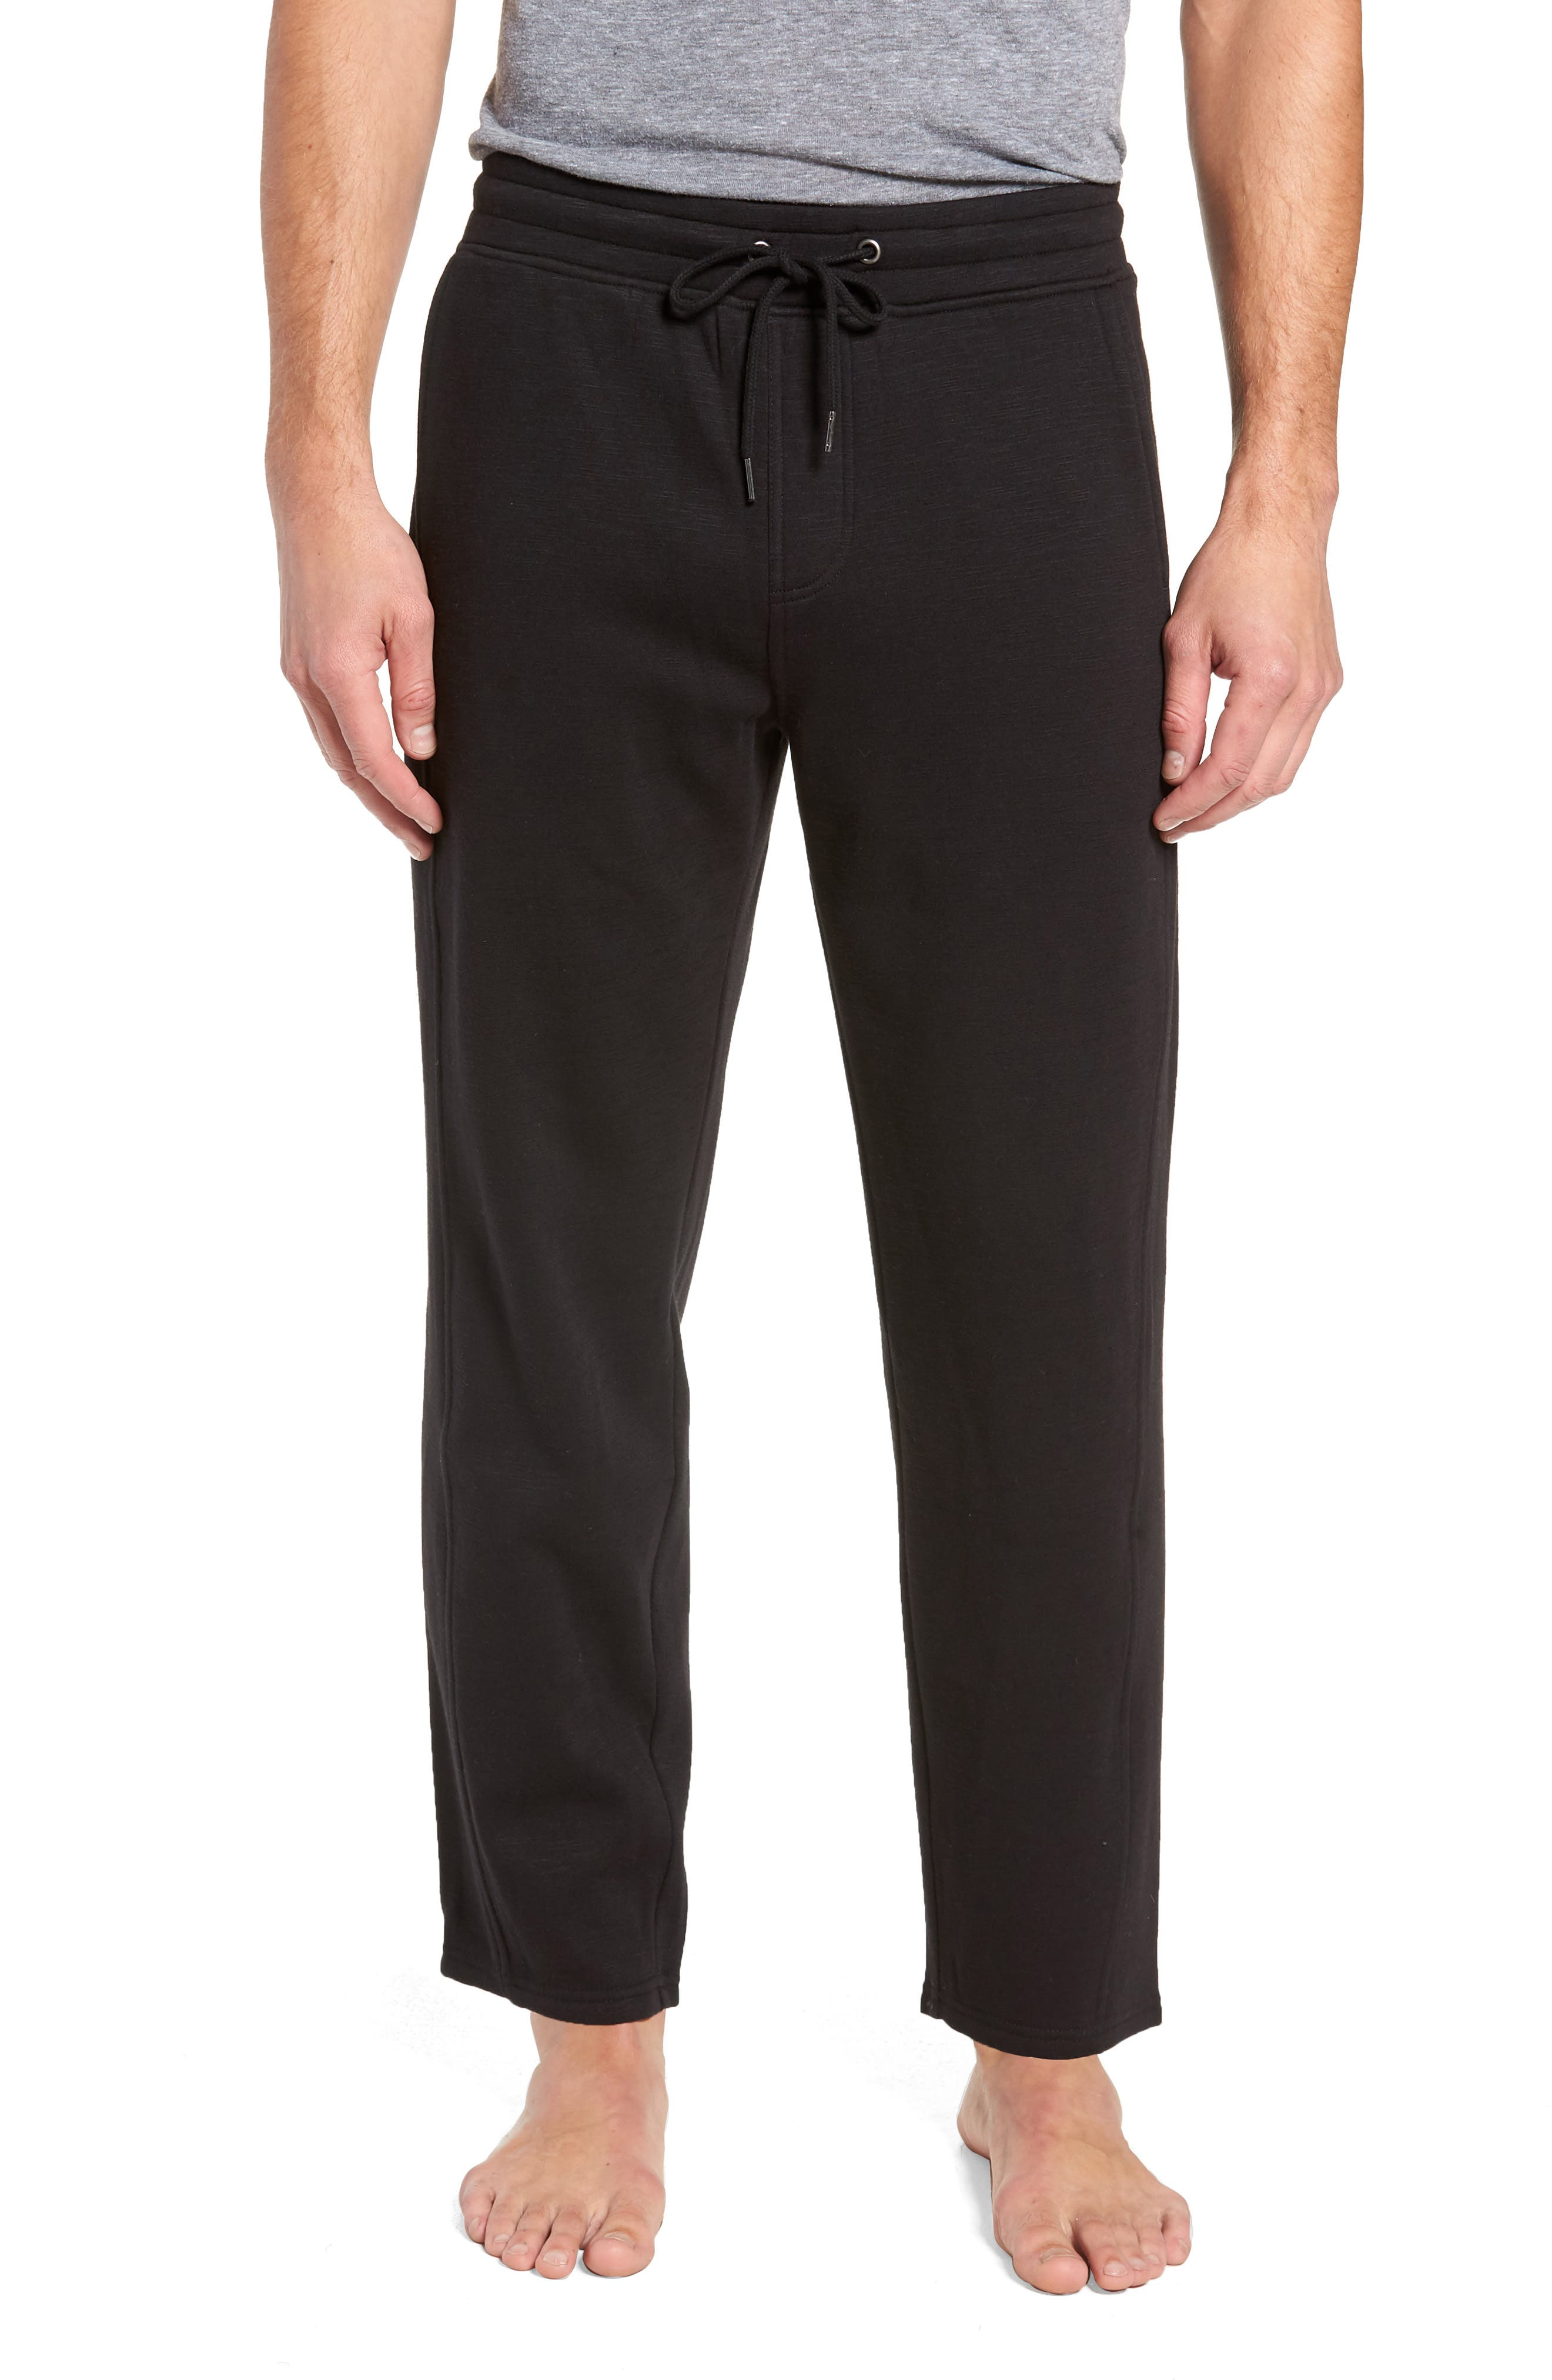 French Terry Moto Pants,                             Main thumbnail 1, color,                             BLACK HEATHER